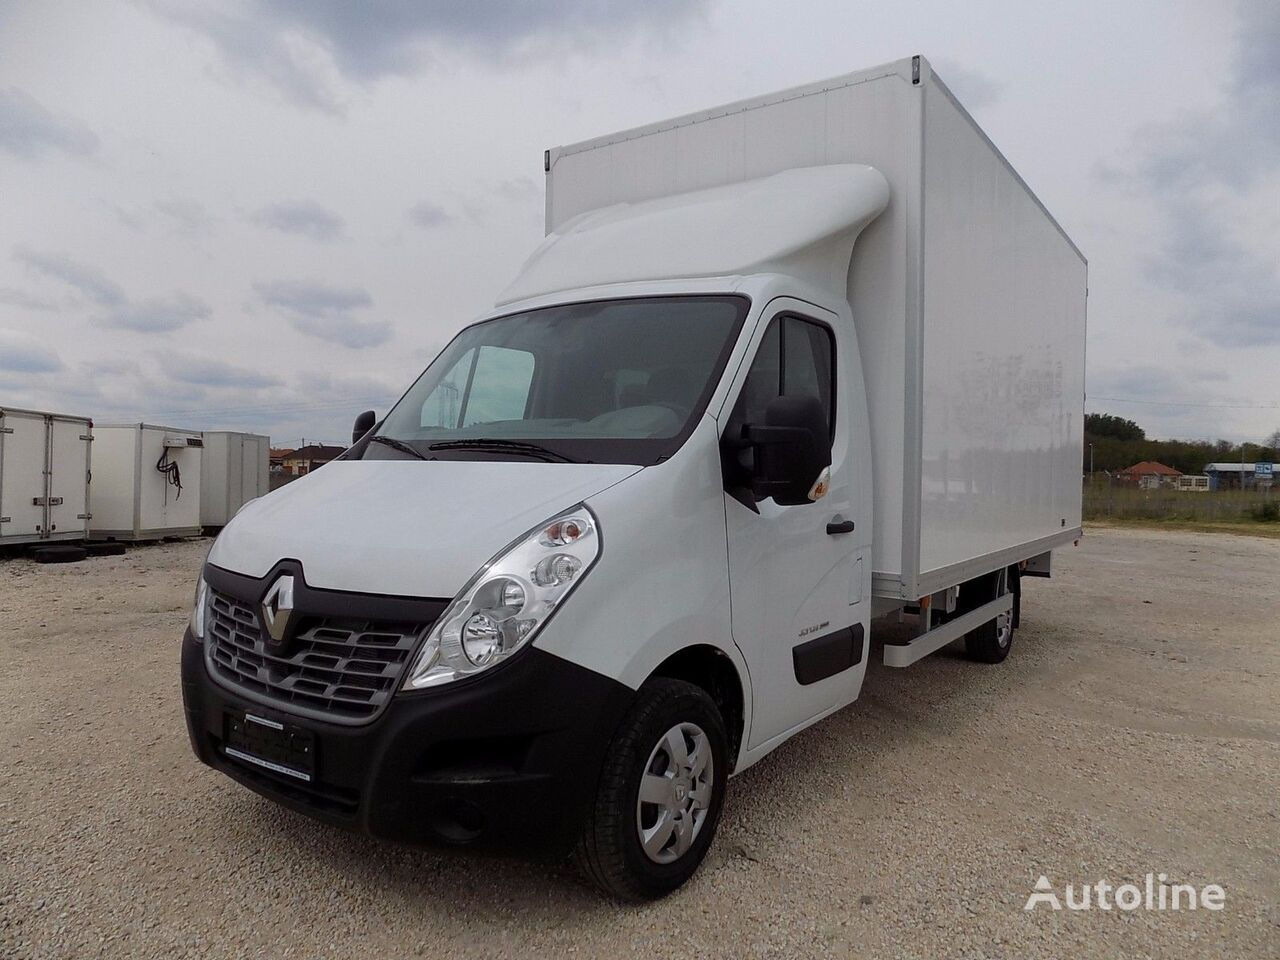 VOLKSWAGEN Crafter XLH2, 15,6m3, 136Ps fourgon utilitaire neuf